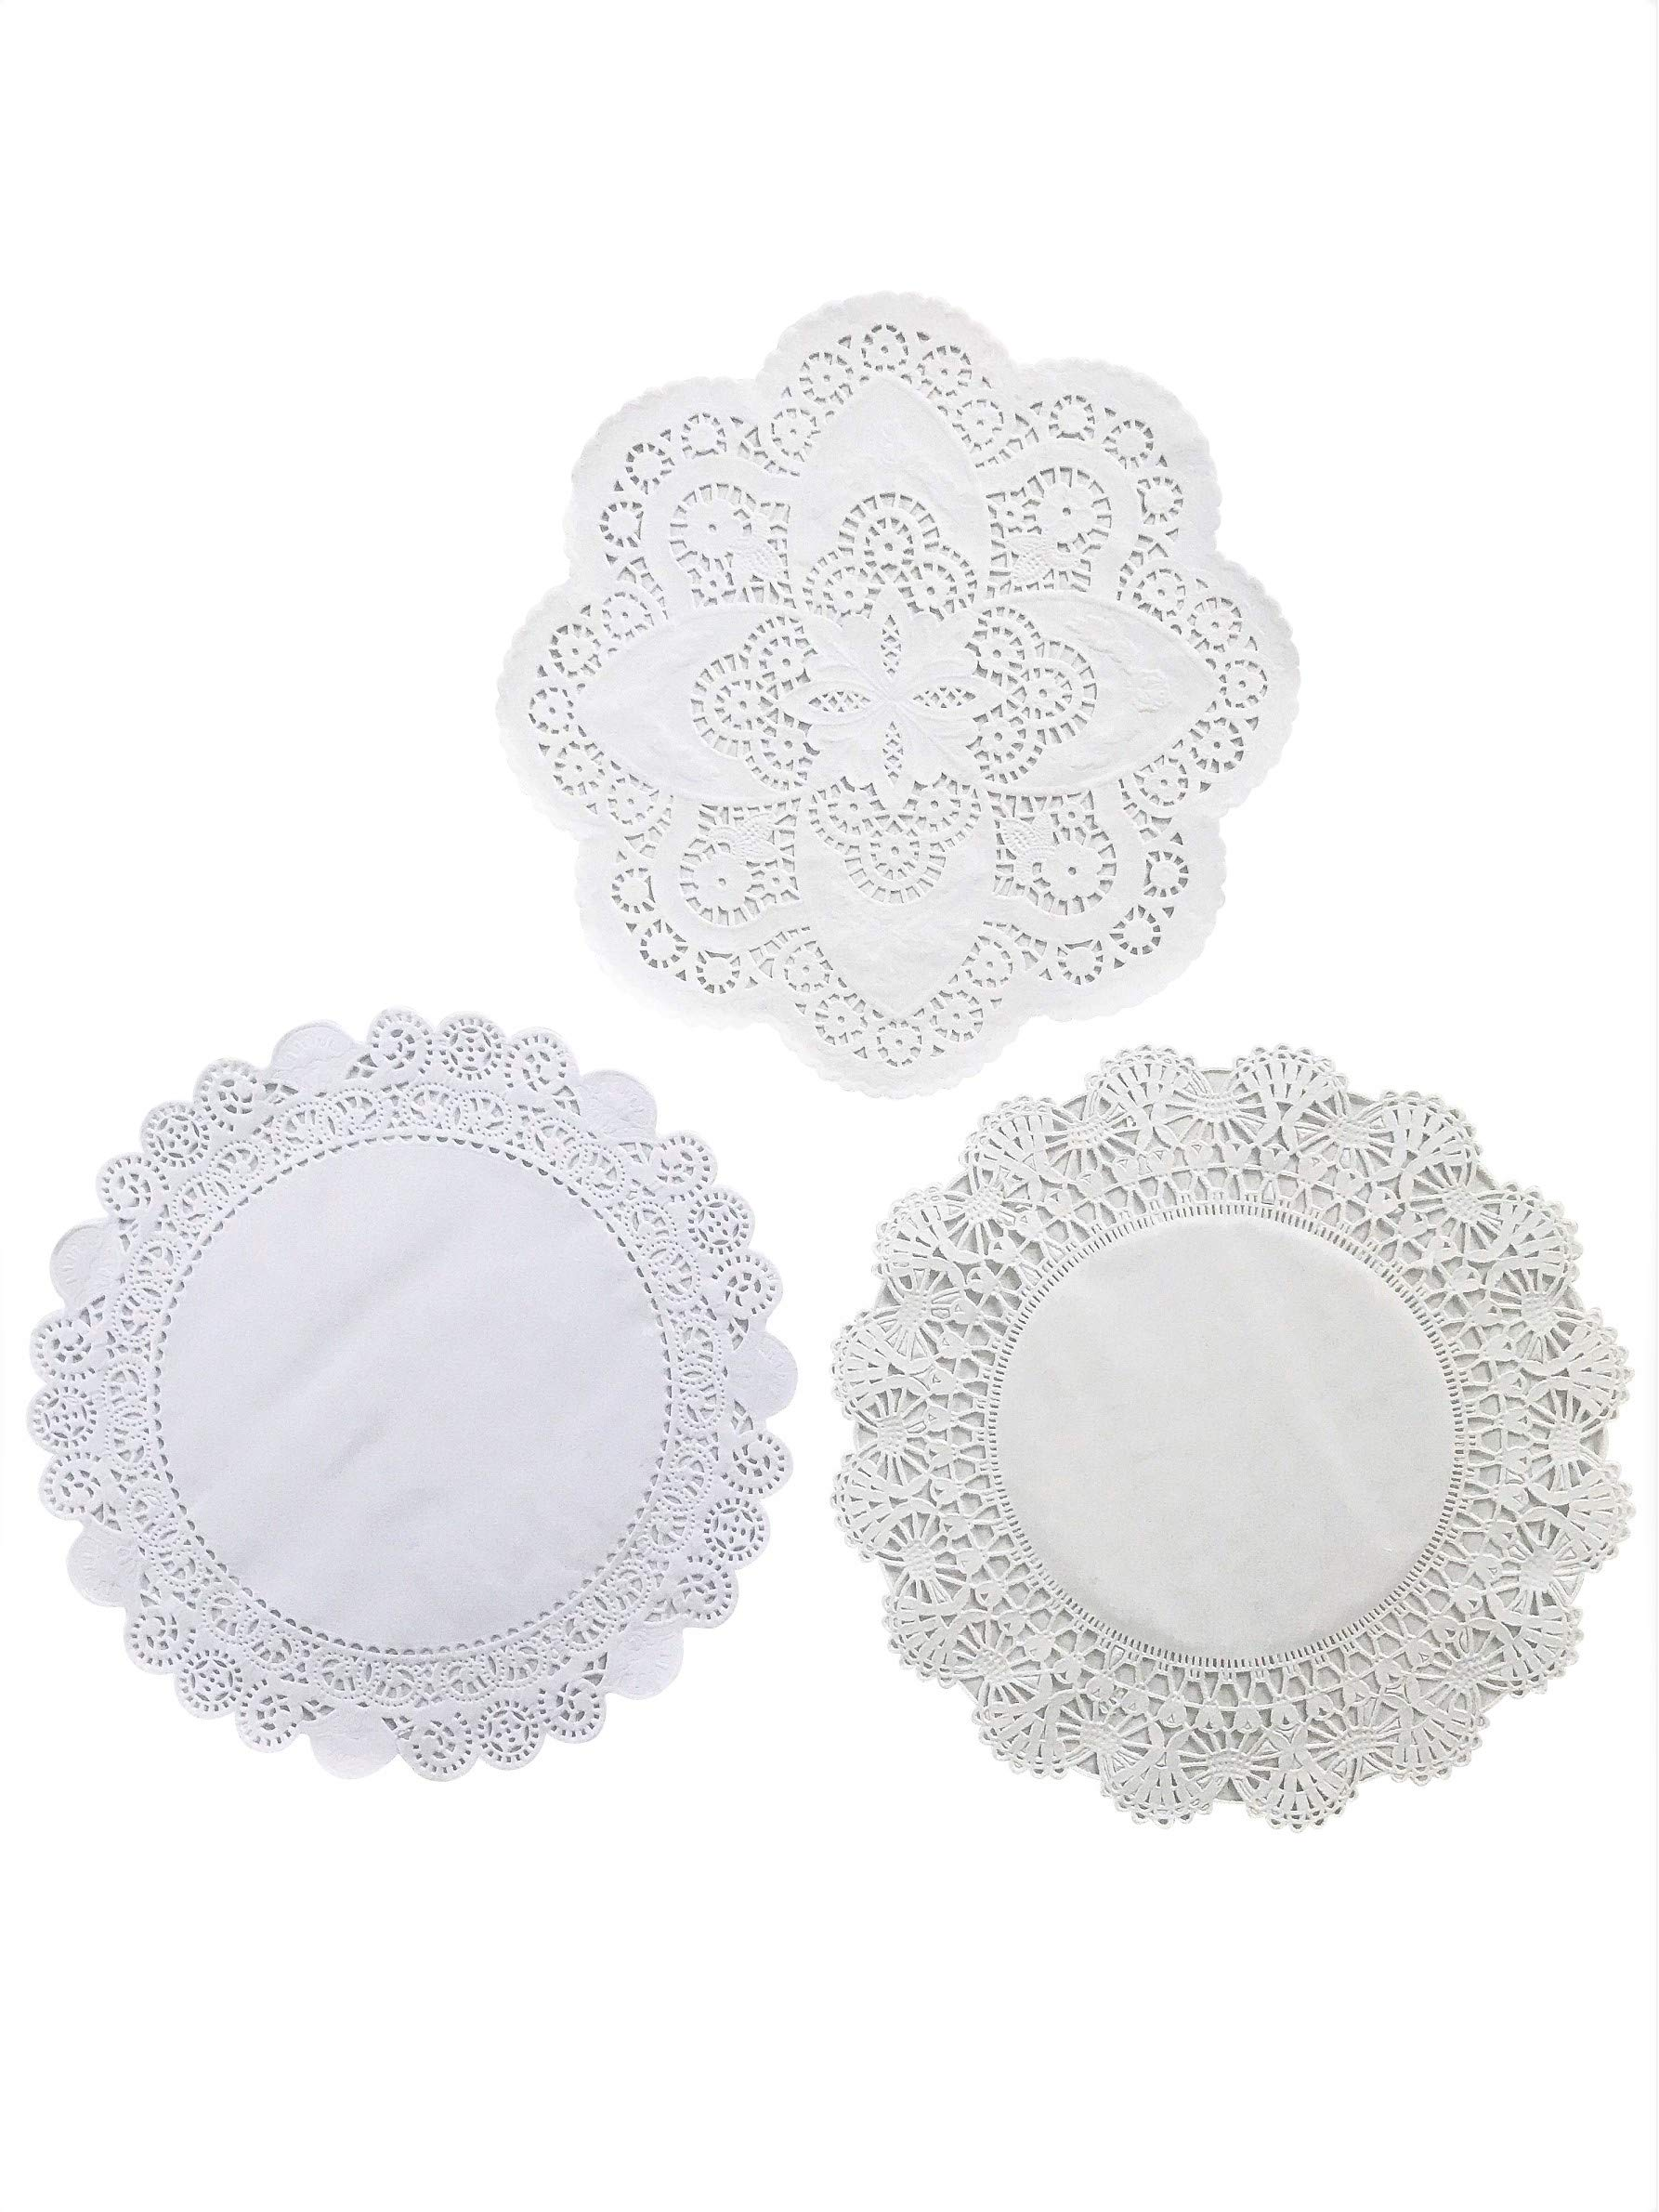 4 5 6 8 and 10 inches Assorted Sizes; White Decorative Tableware Placemats Beautiful Assortment Variety pack of 150 /– 30 of each Round paper Lace Table Doilies